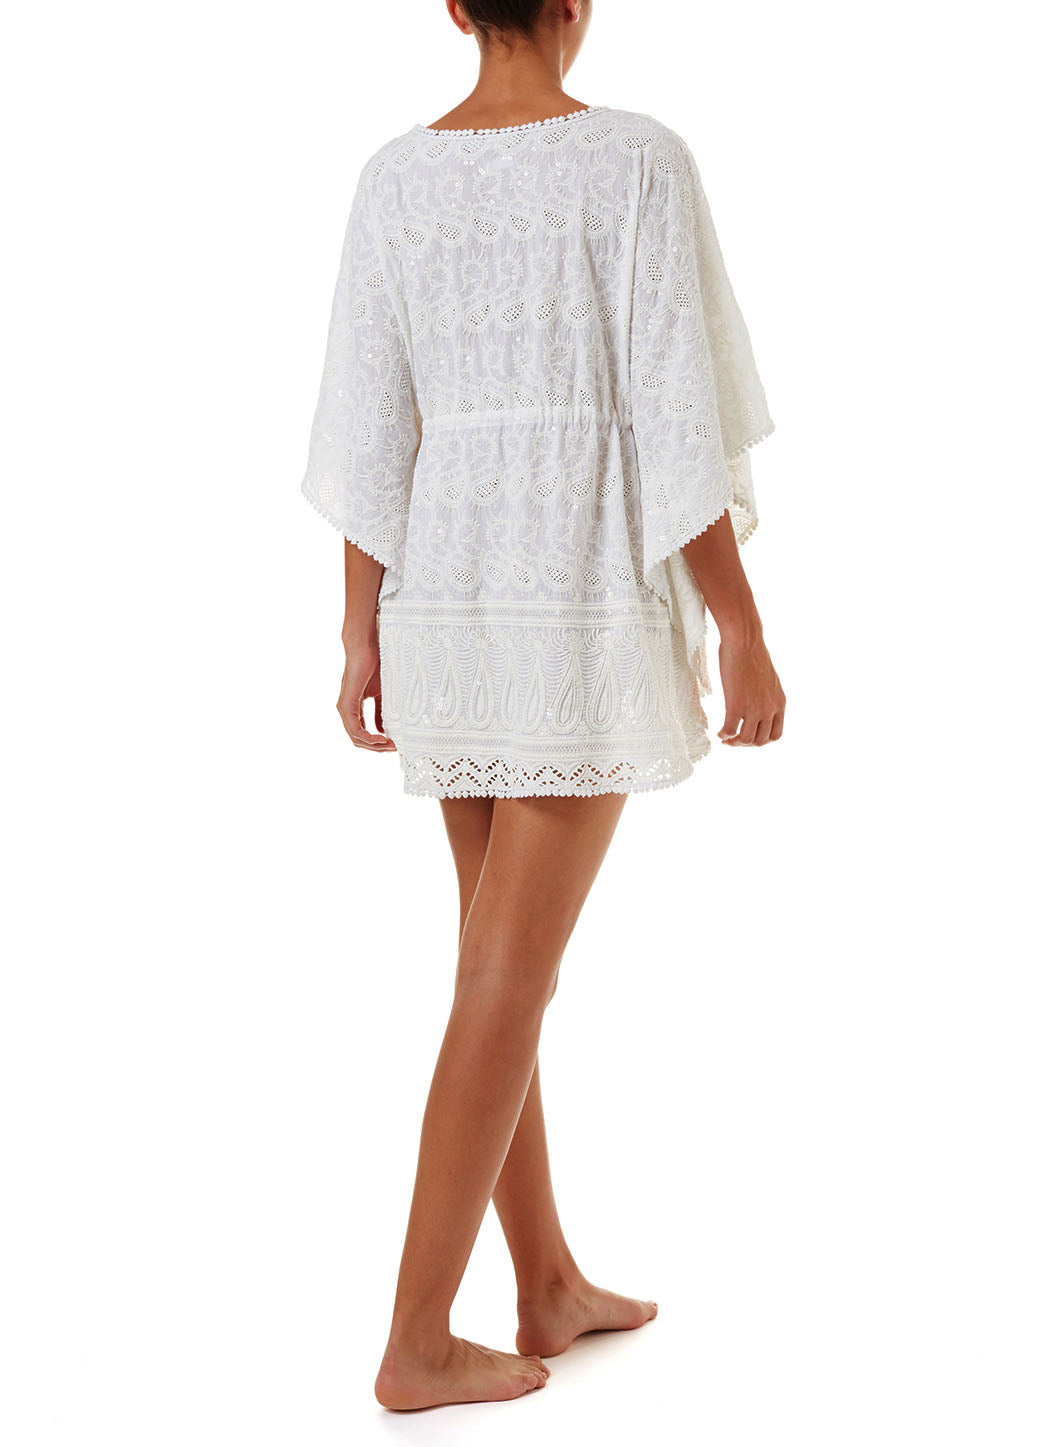 Trixie White Textured V-Neck Short Kaftan